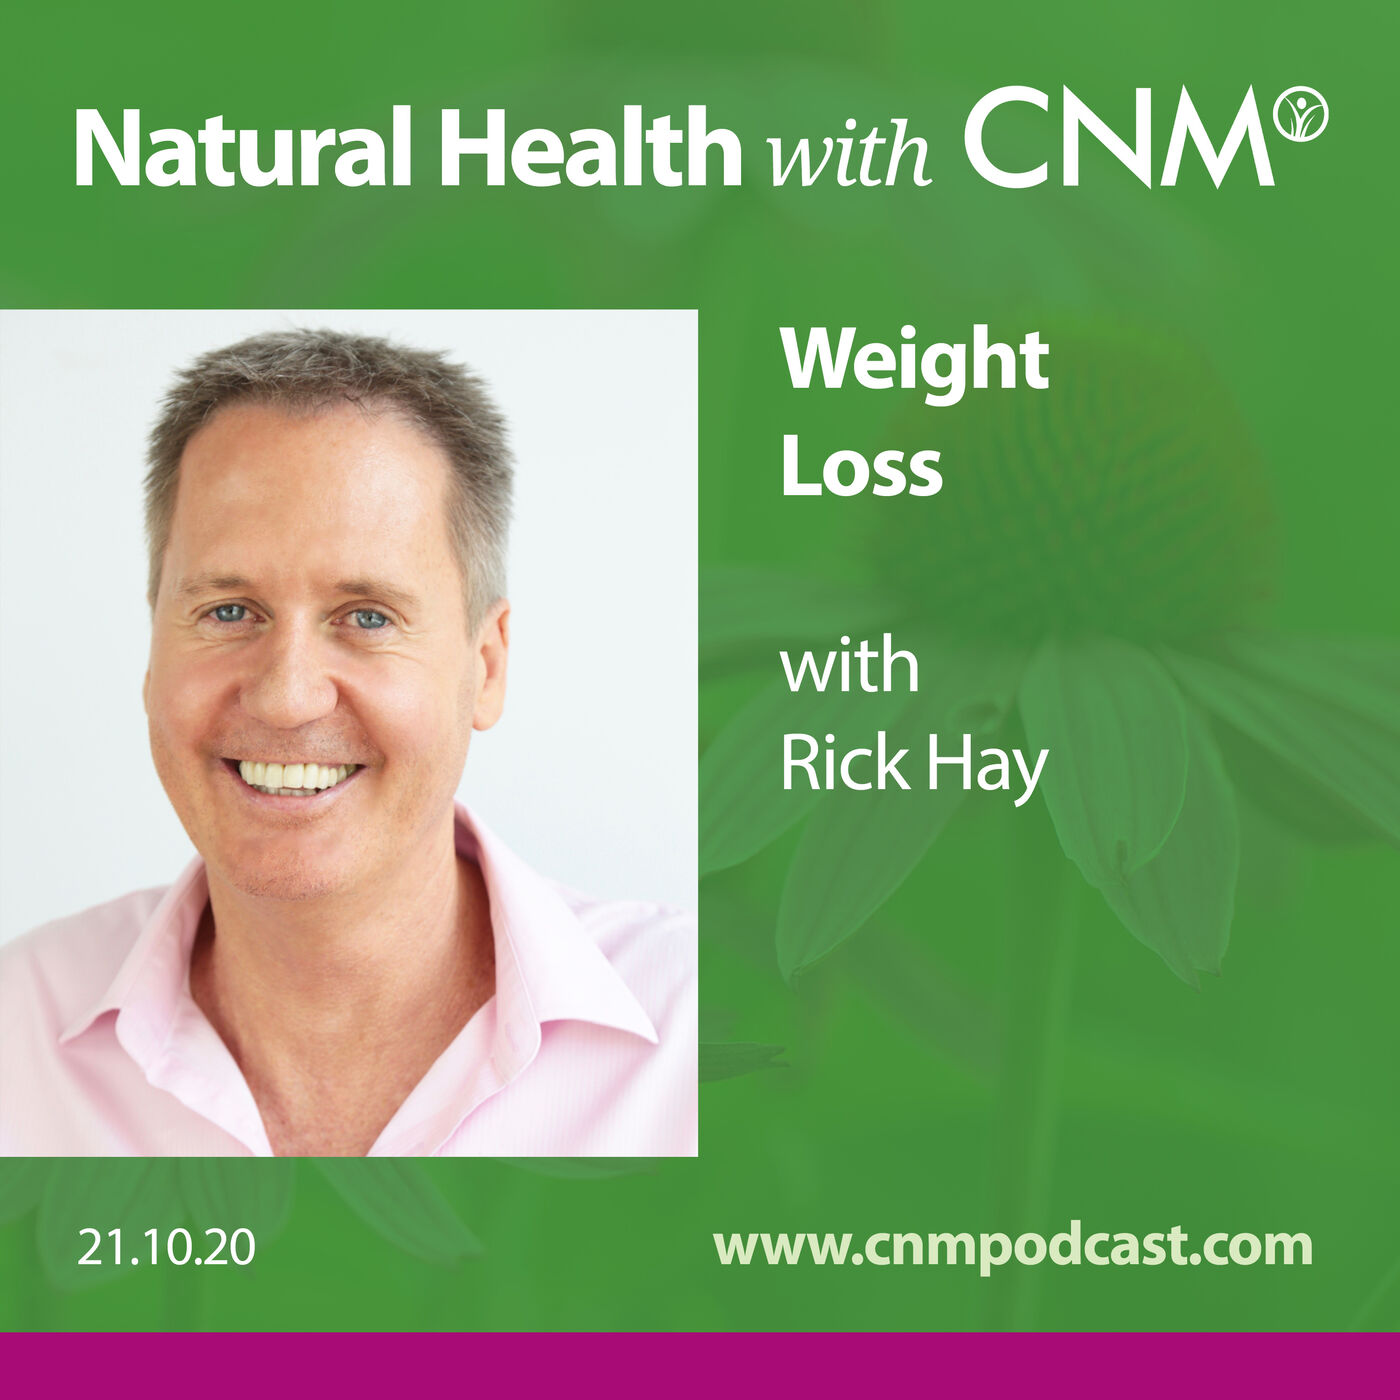 Healthy Weight Loss with Rick Hay